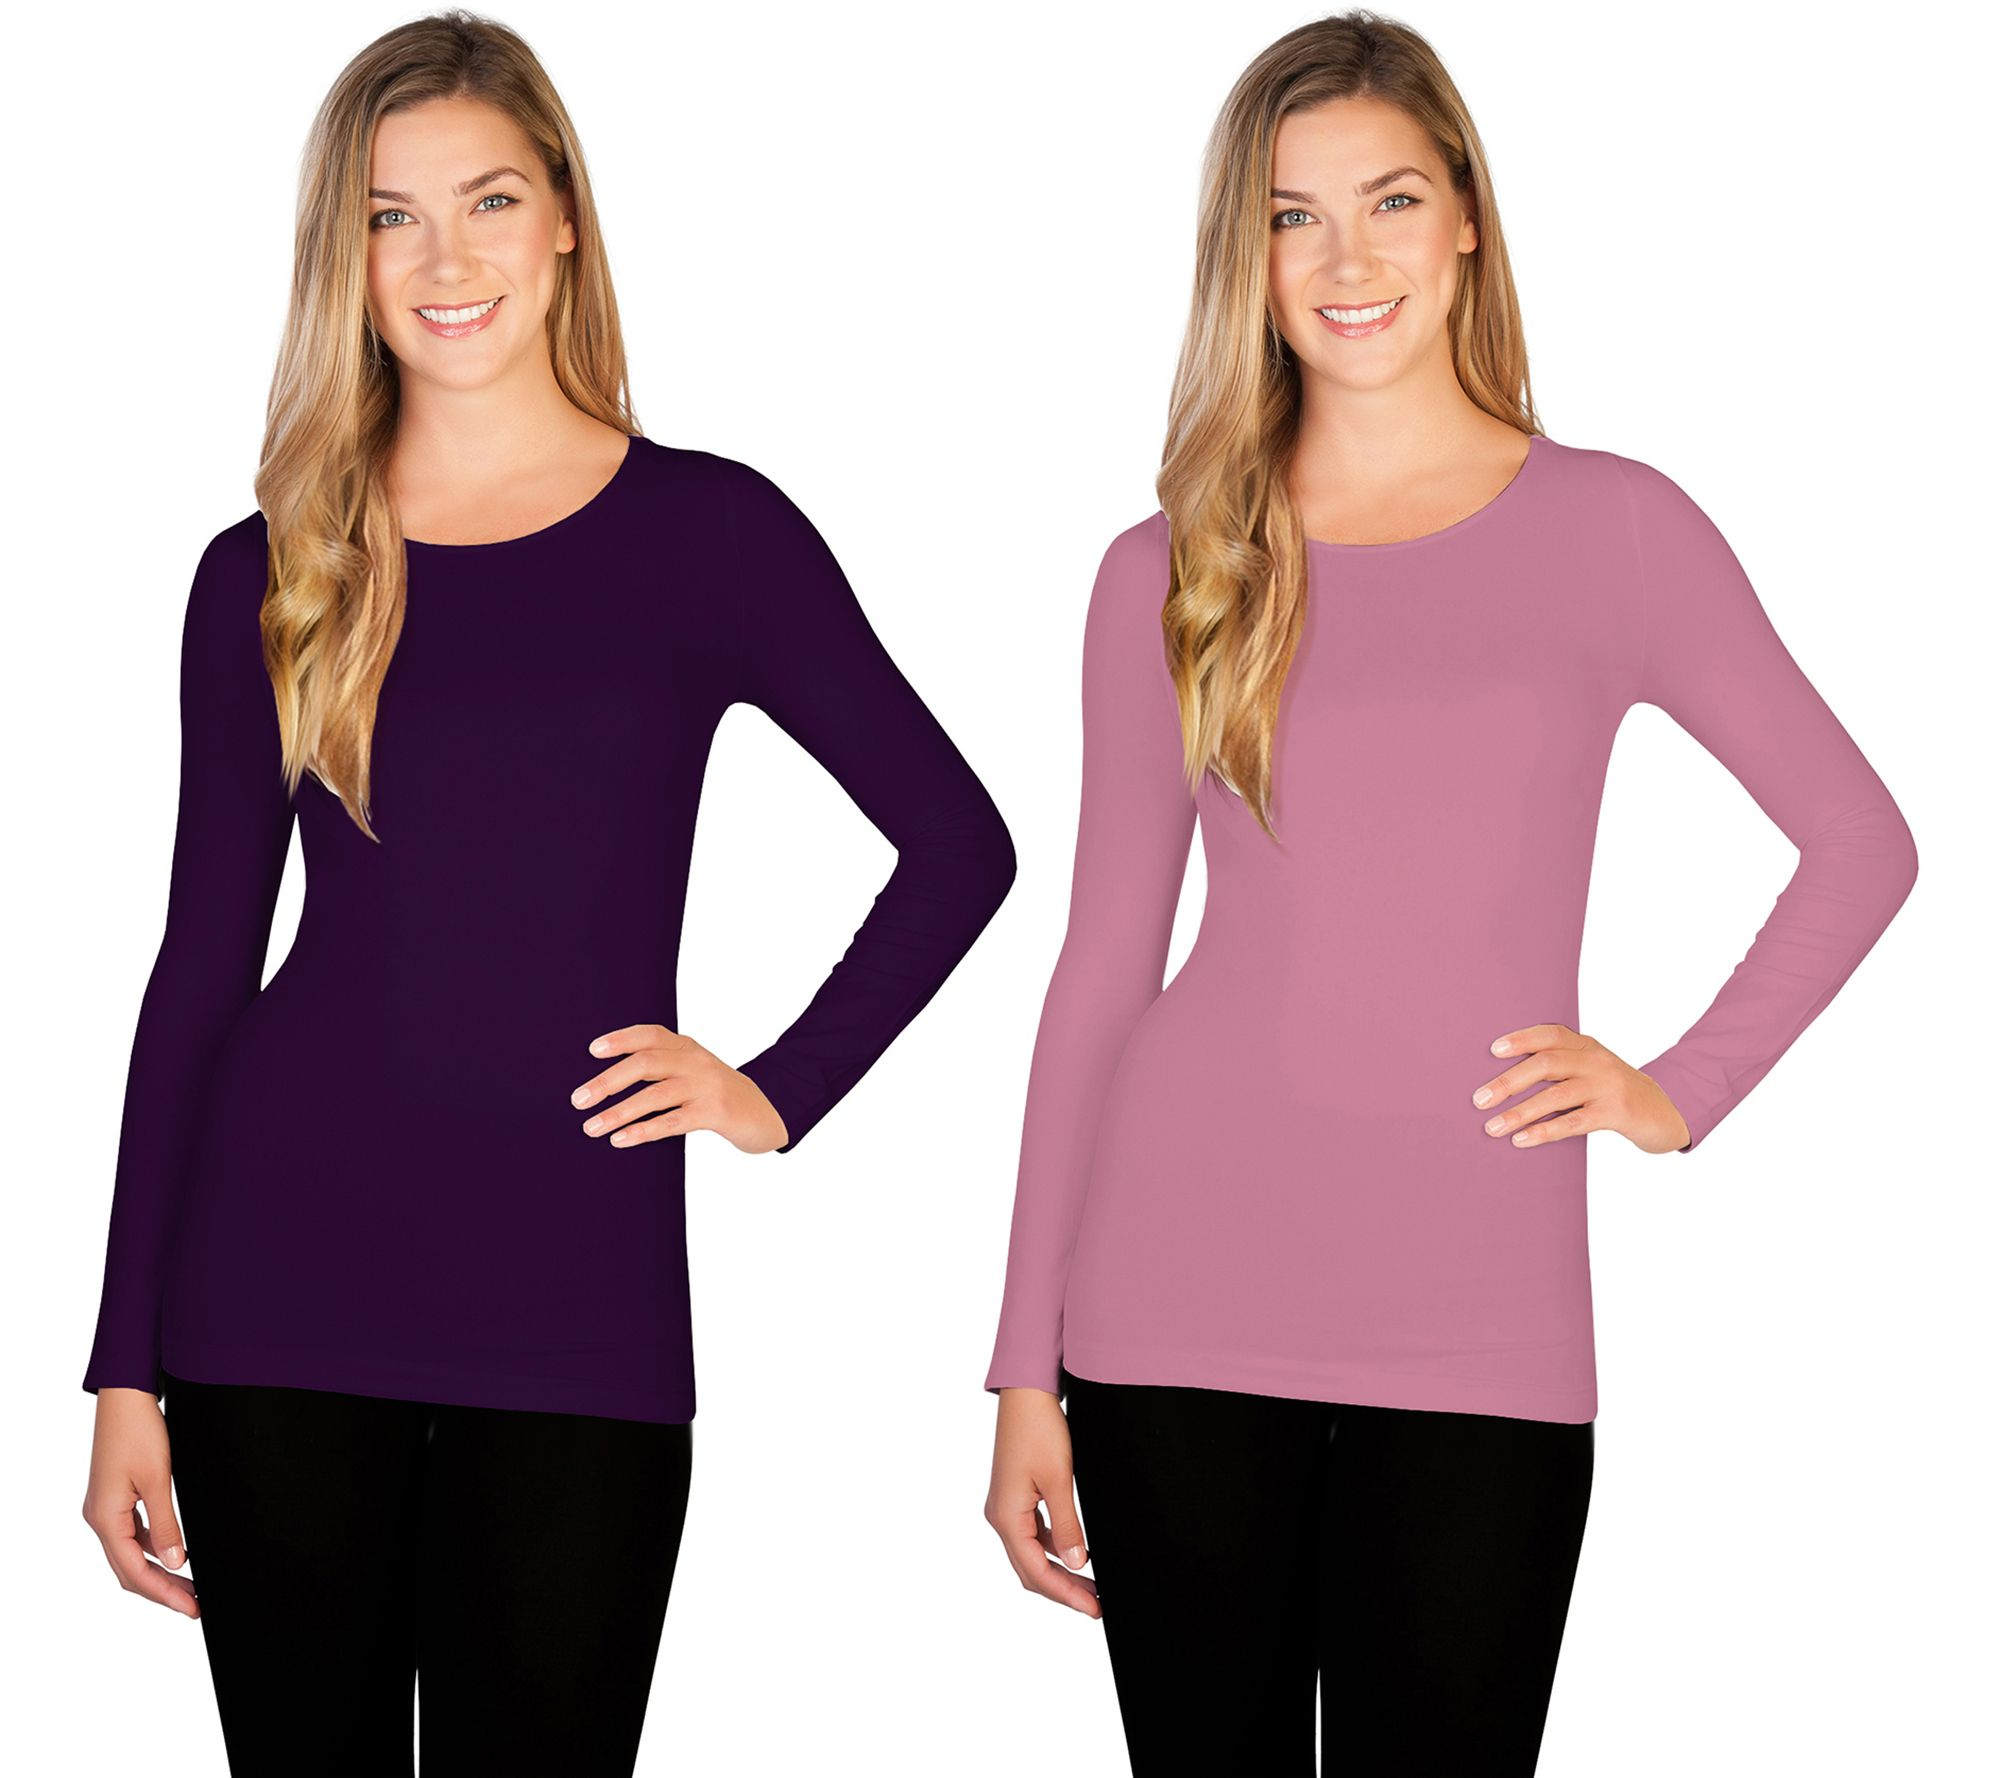 1c817ea11bba0 skinnytees Missy Long Sleeve Crew Neck Top Set of 2 - Page 1 — QVC.com